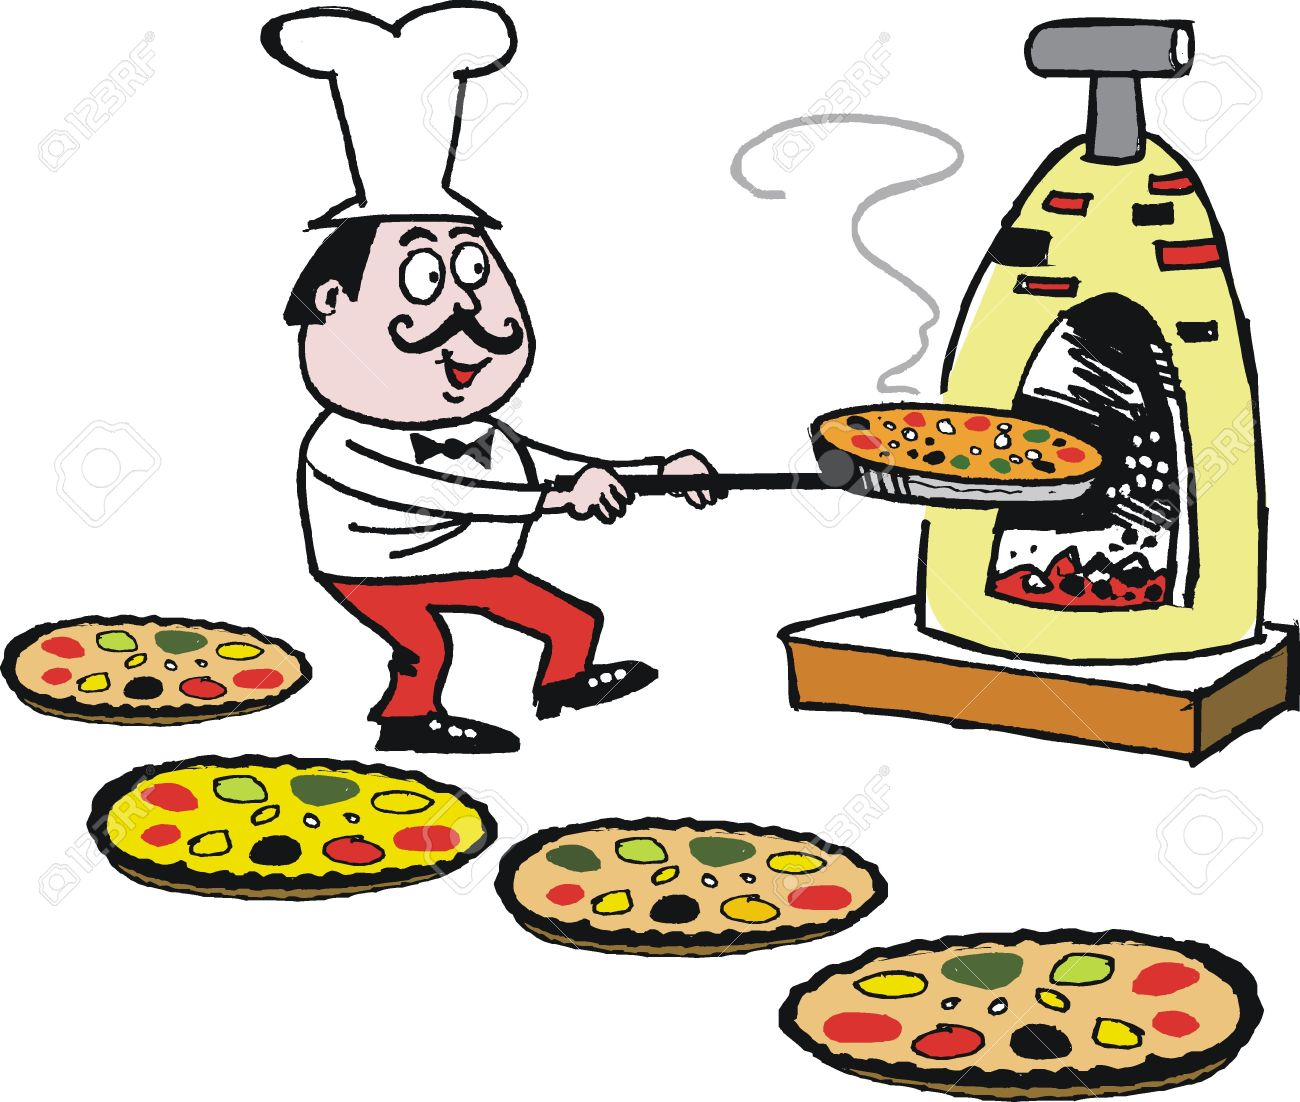 Vector cartoon of chef making pizzas in oven Stock Vector - 13840531